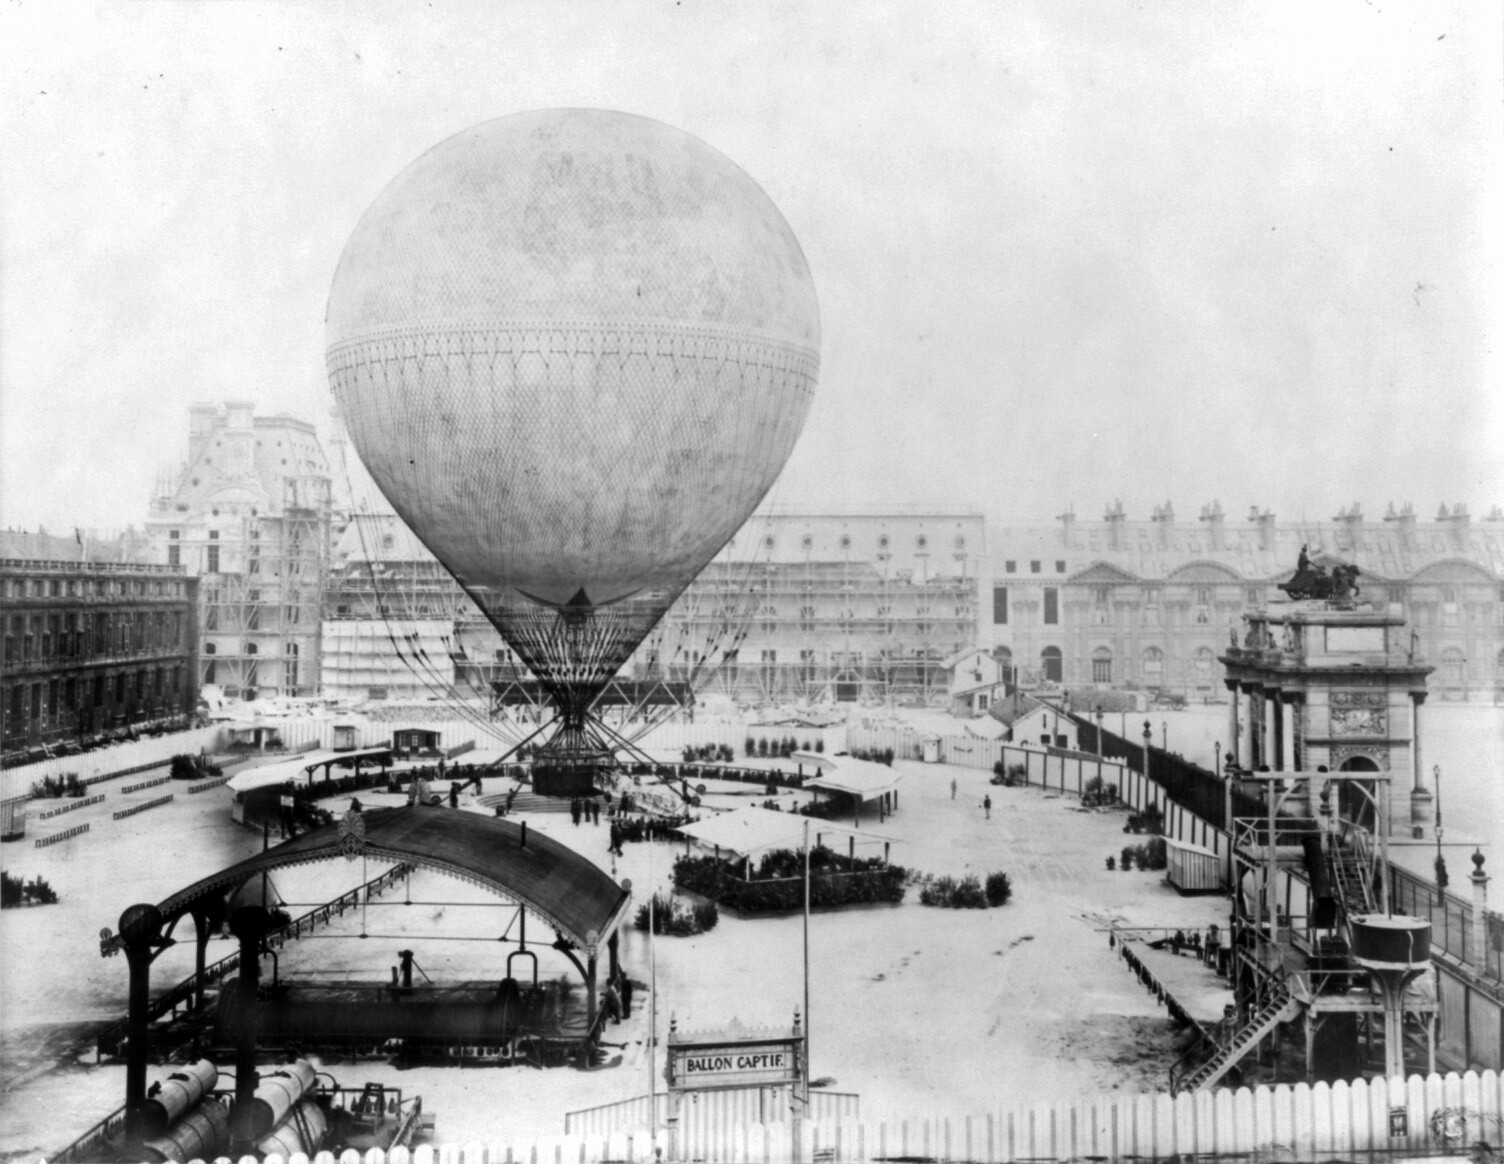 Henri Giffard's grand balloon before ascent, Tuileries, Paris, 1878